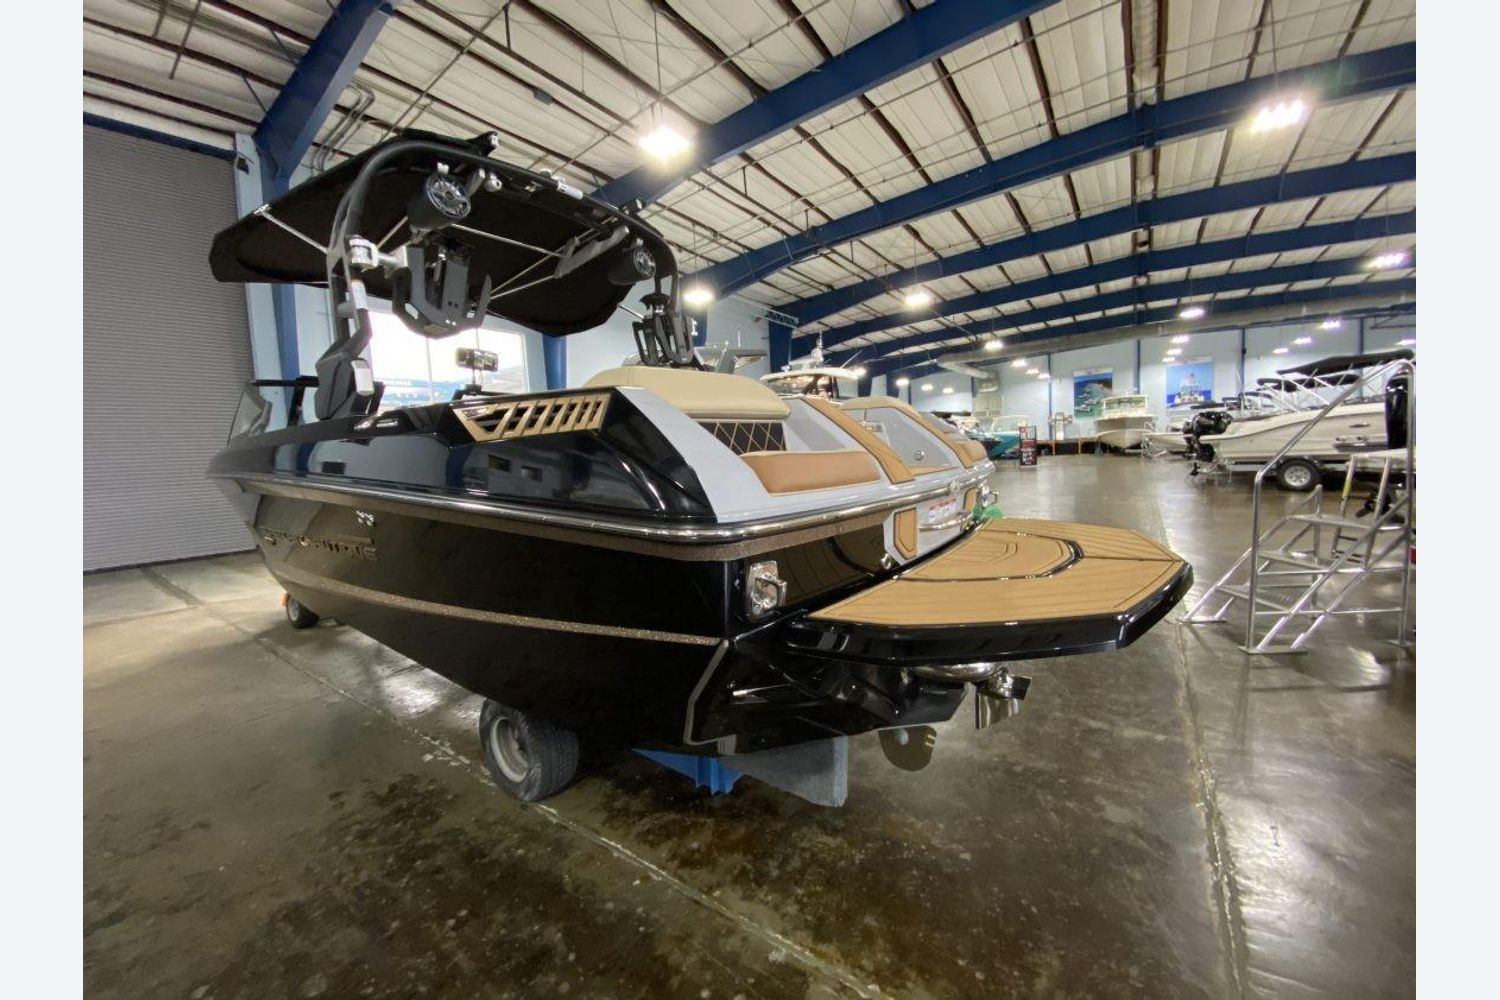 Thumbnail 2 for 2020 Nautique Super Air Nautique GS20